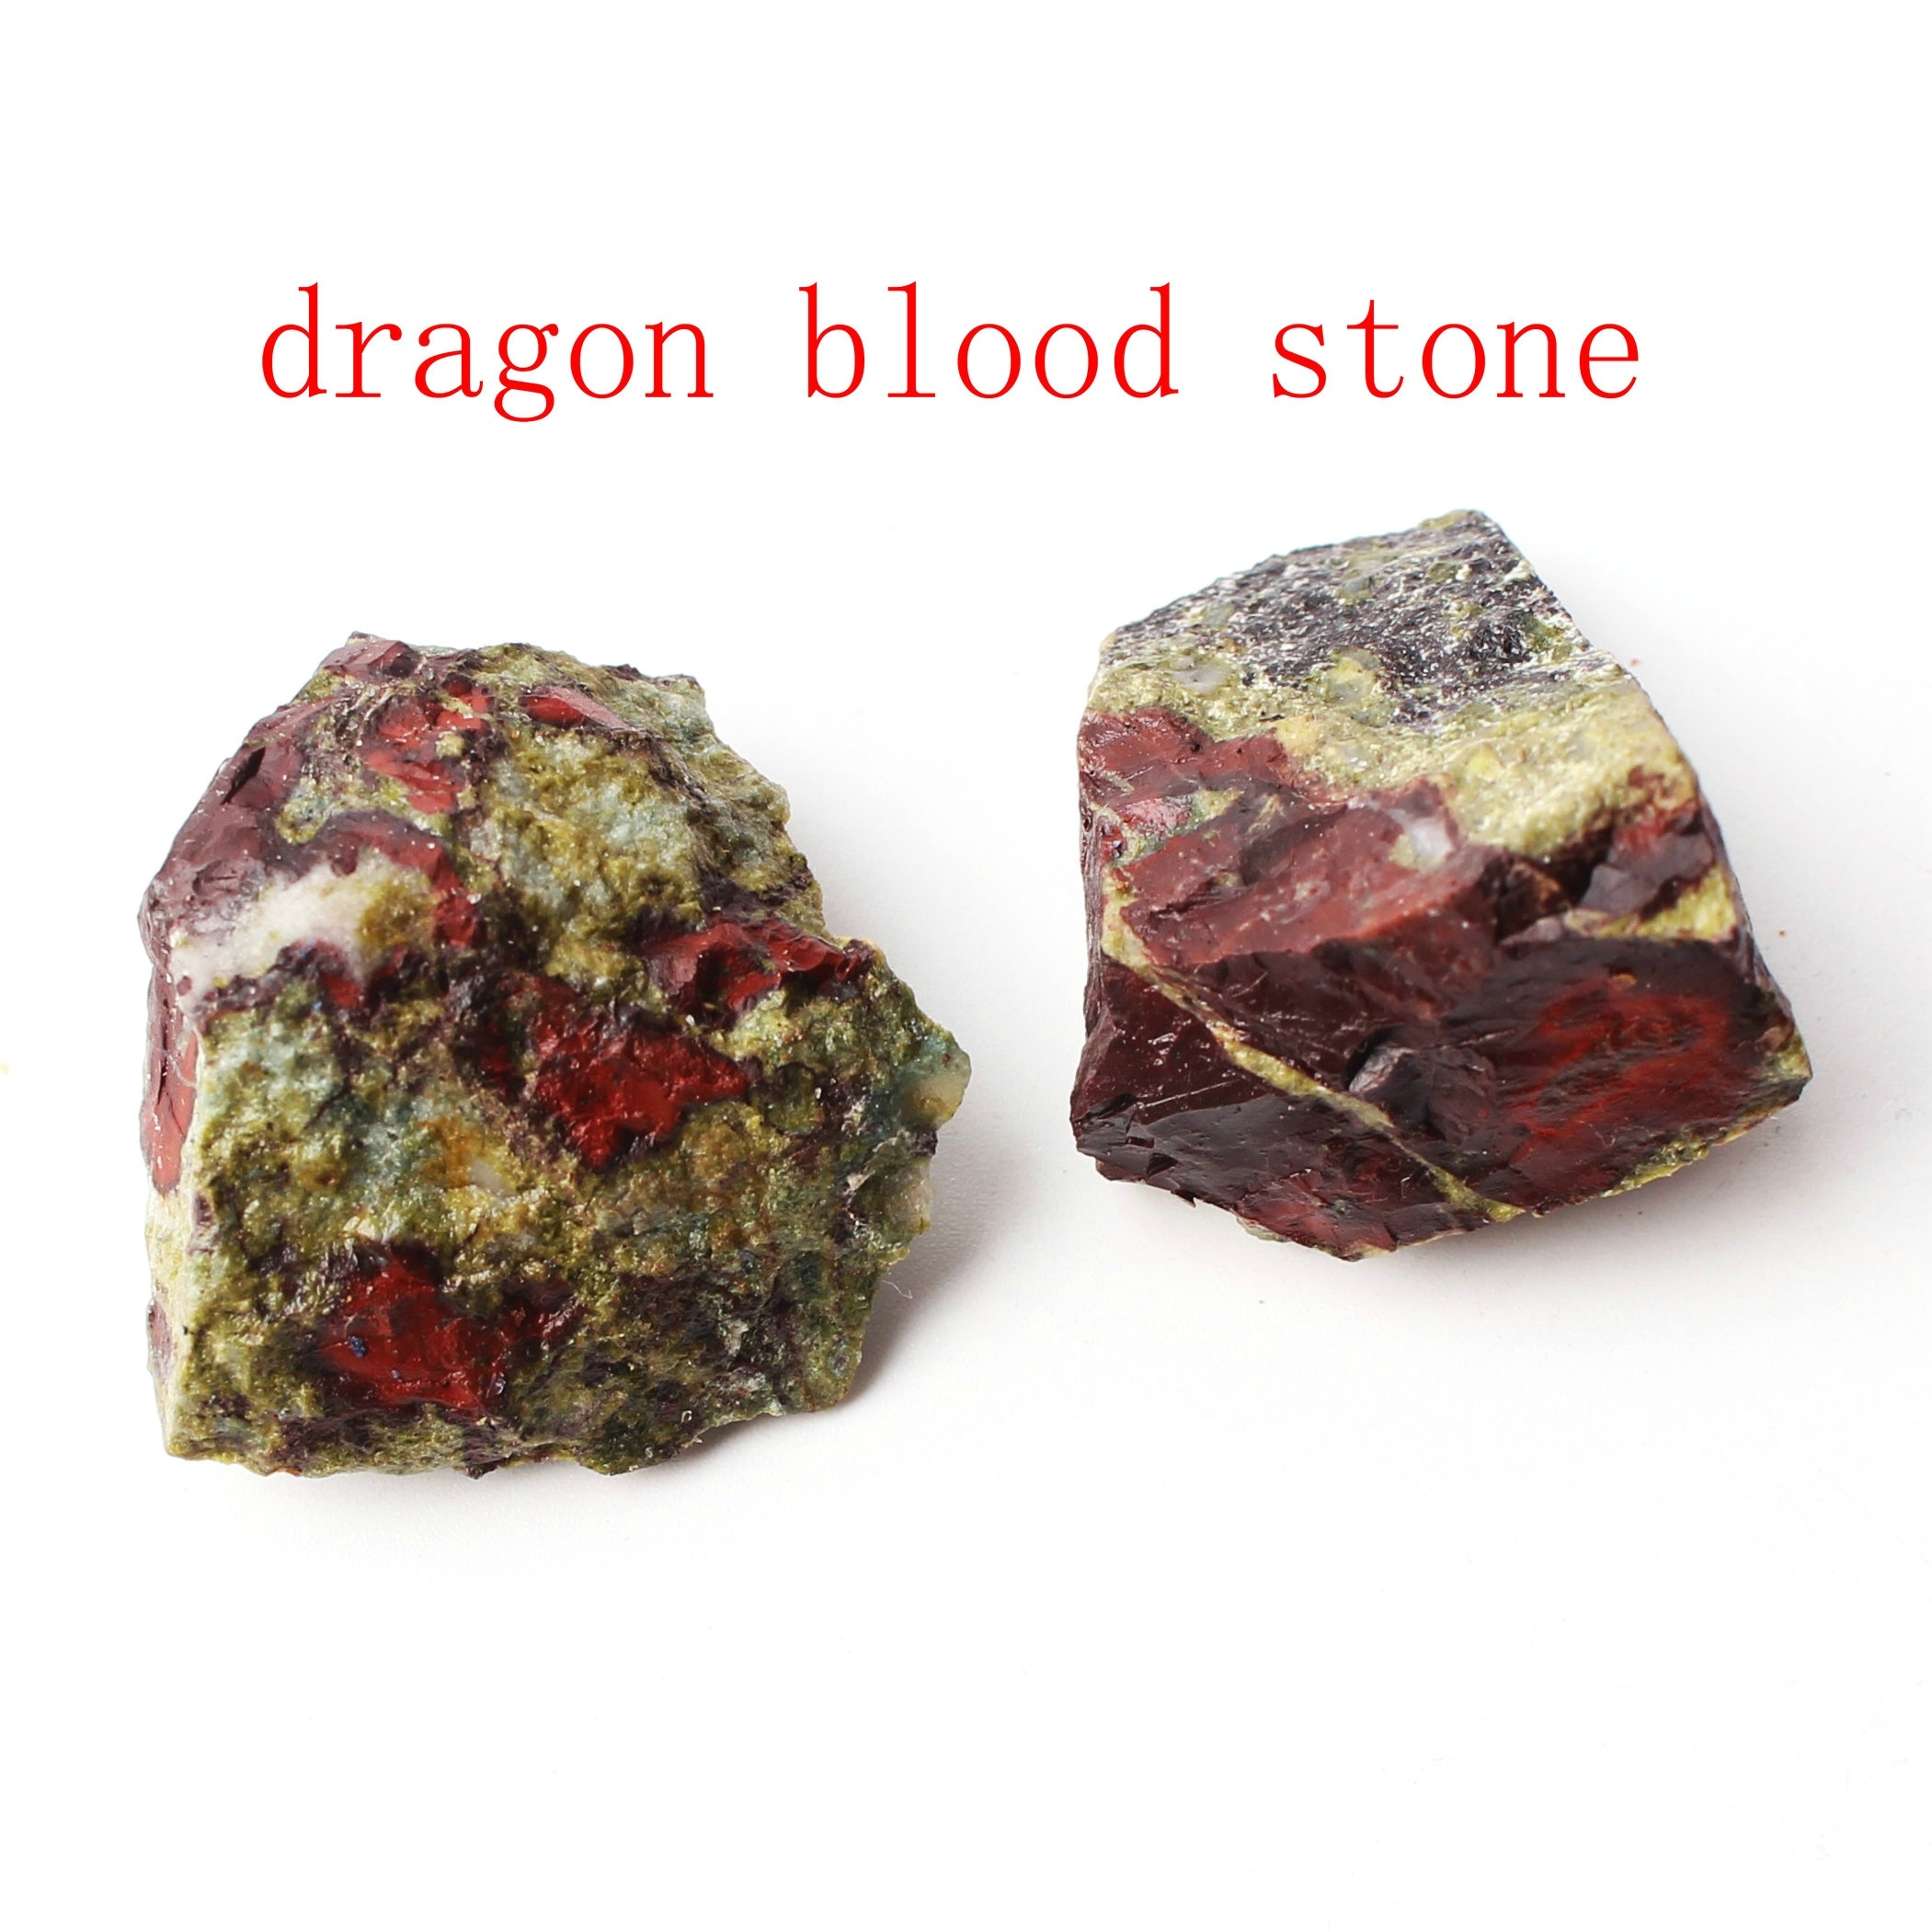 2PC Or More Natural Crystal Quartz Dragon Blood Stone Minerals Specimen Irregular Shape Rough Stone Reiki Healing Home Decor